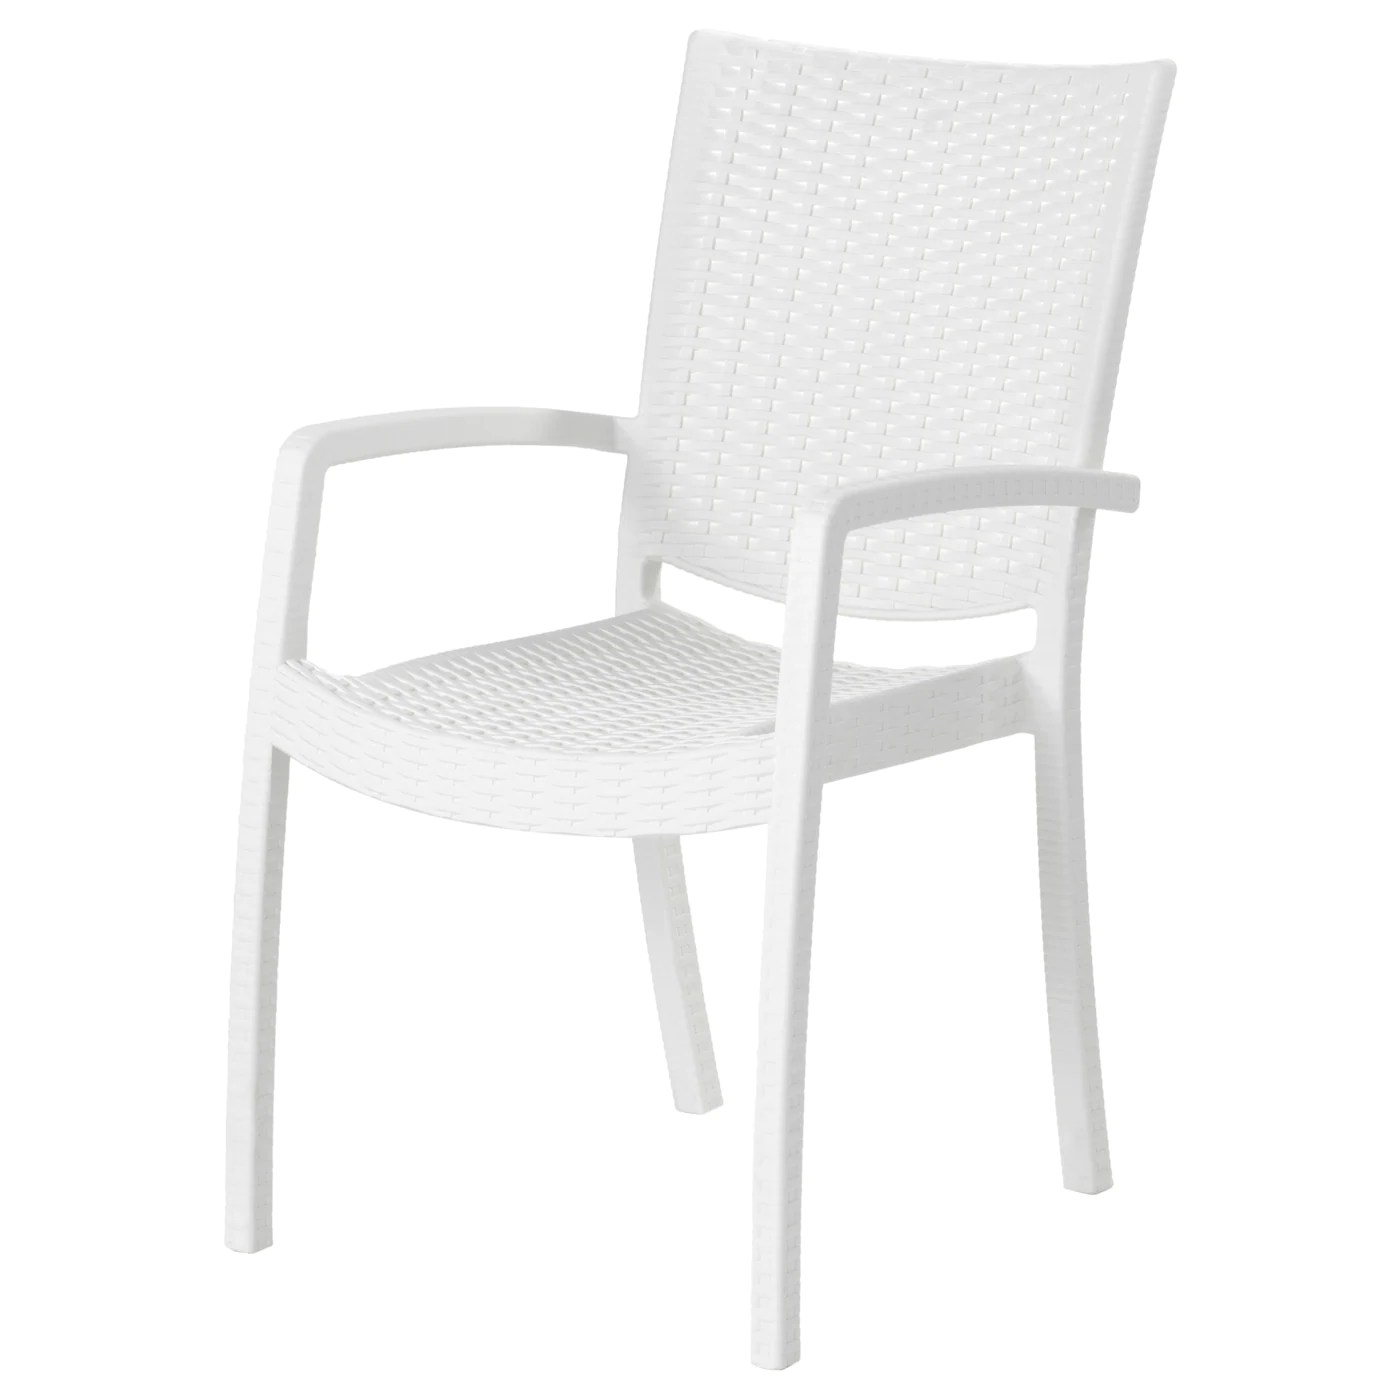 INNAMO Chair with armrests, outdoor White